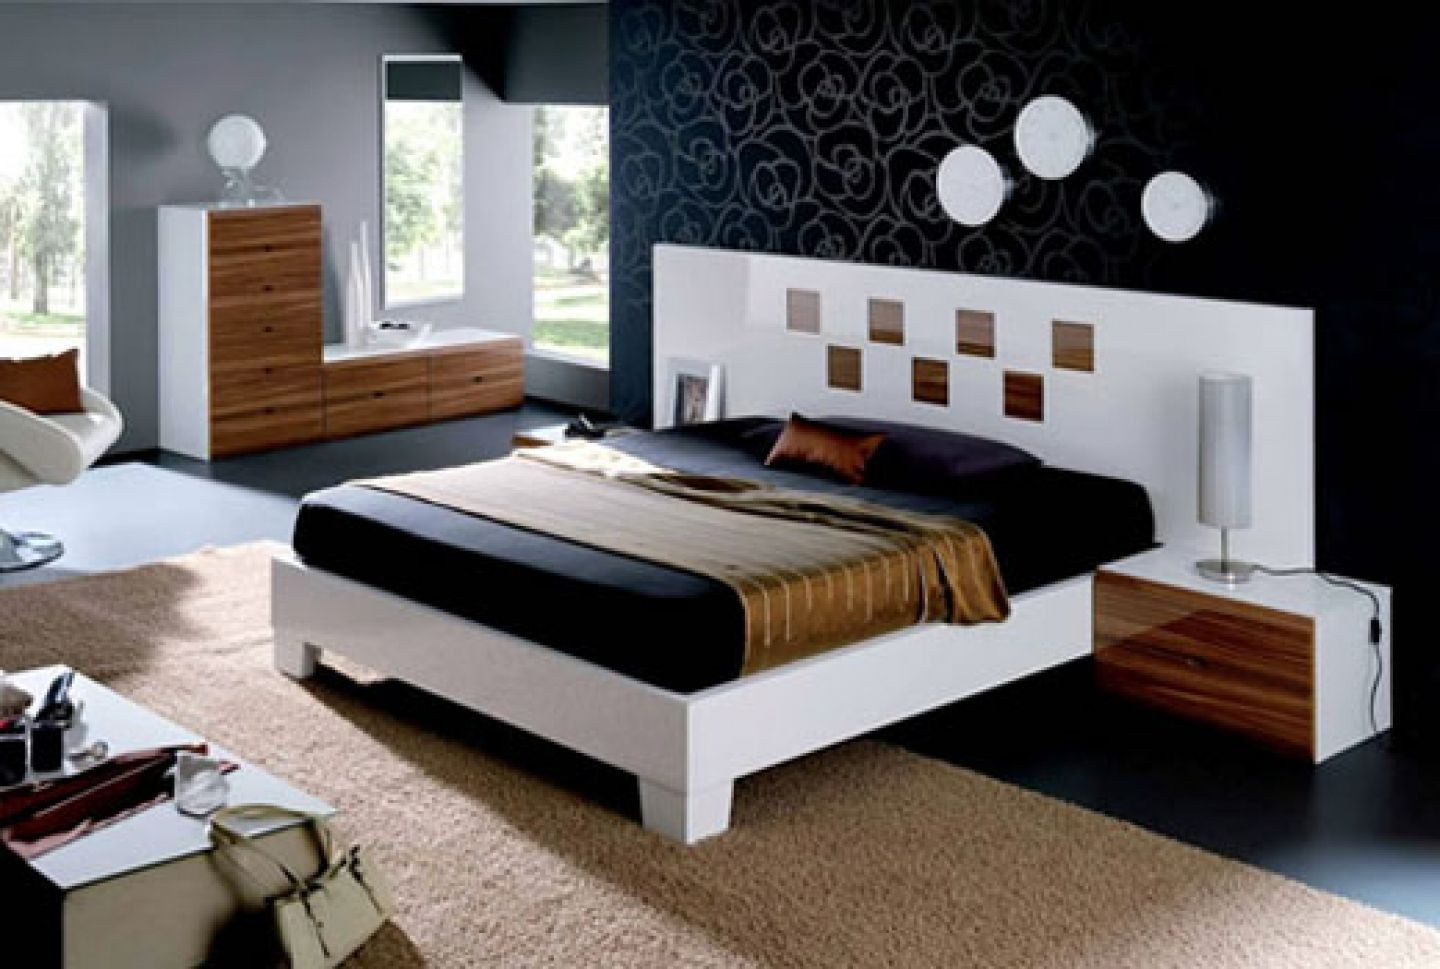 Master bedroom interior design - Modern Bedroom Designs For Couples Master Bedroom Decorating Ideas Contemporary